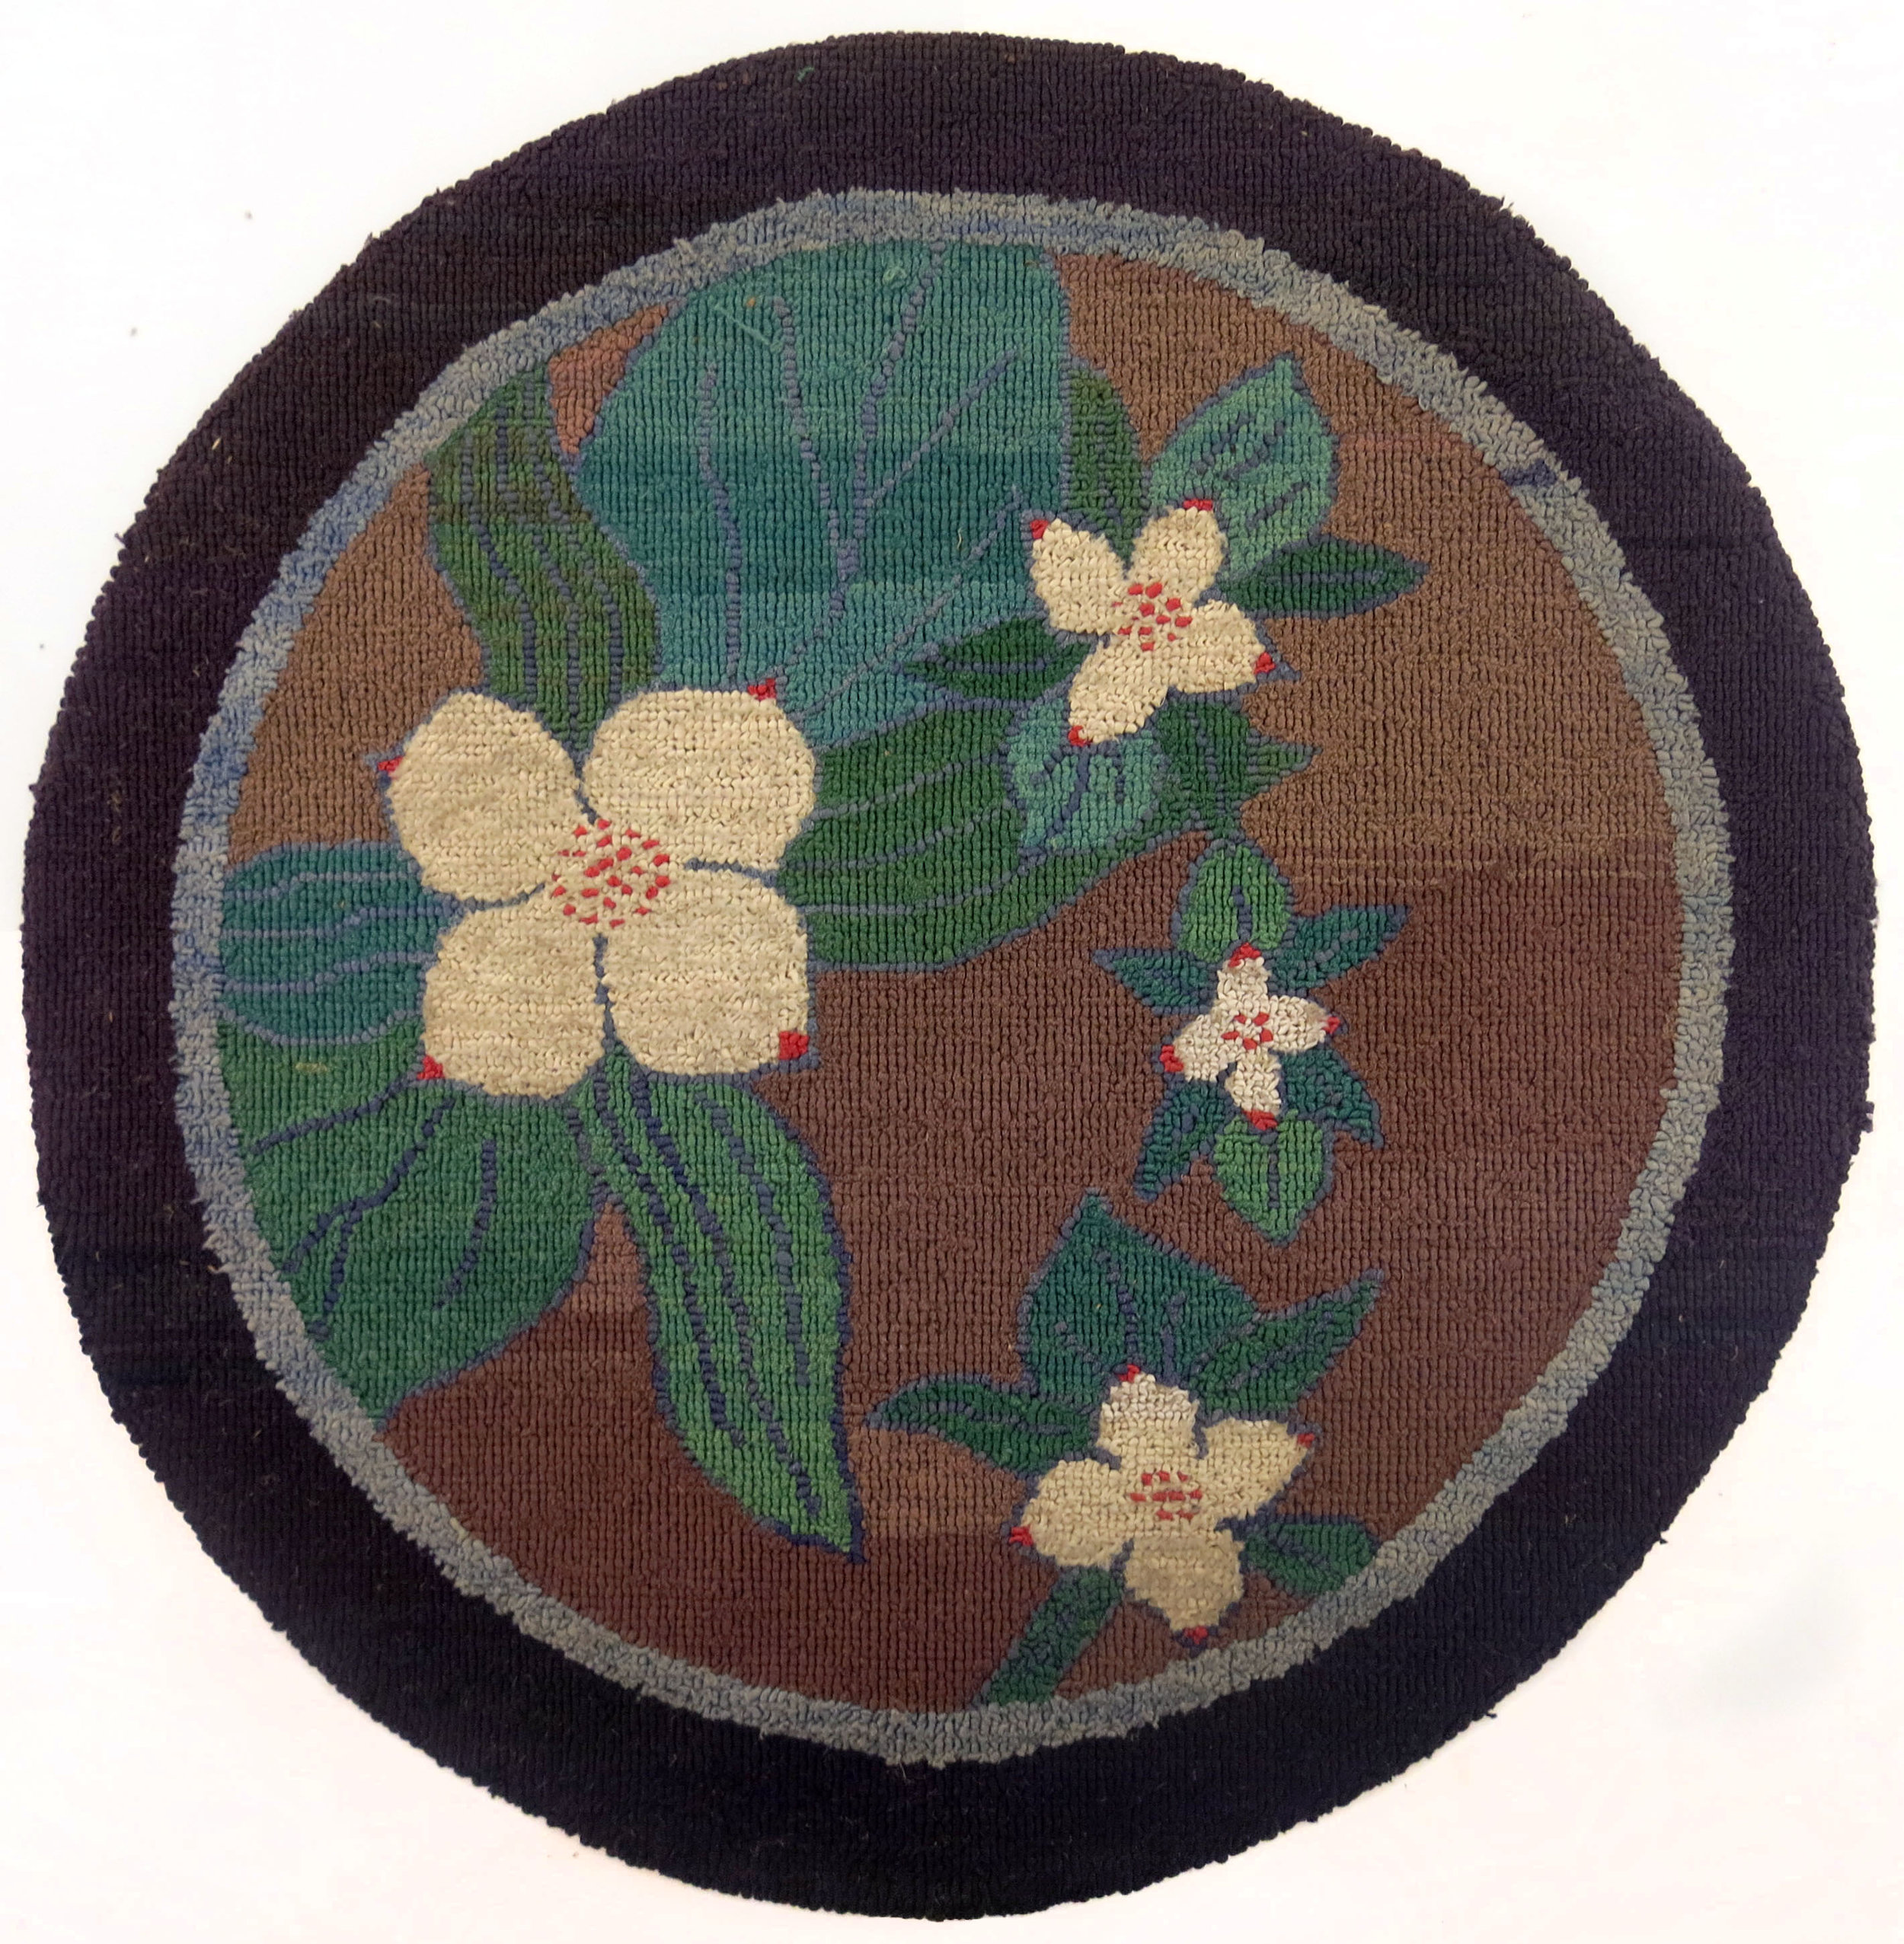 Anonymous, The Grenfell Mission, Round Crackerberry Mat, c. 1935, silk, rayon, and burlap; dyed, 16 1/2 in diam.